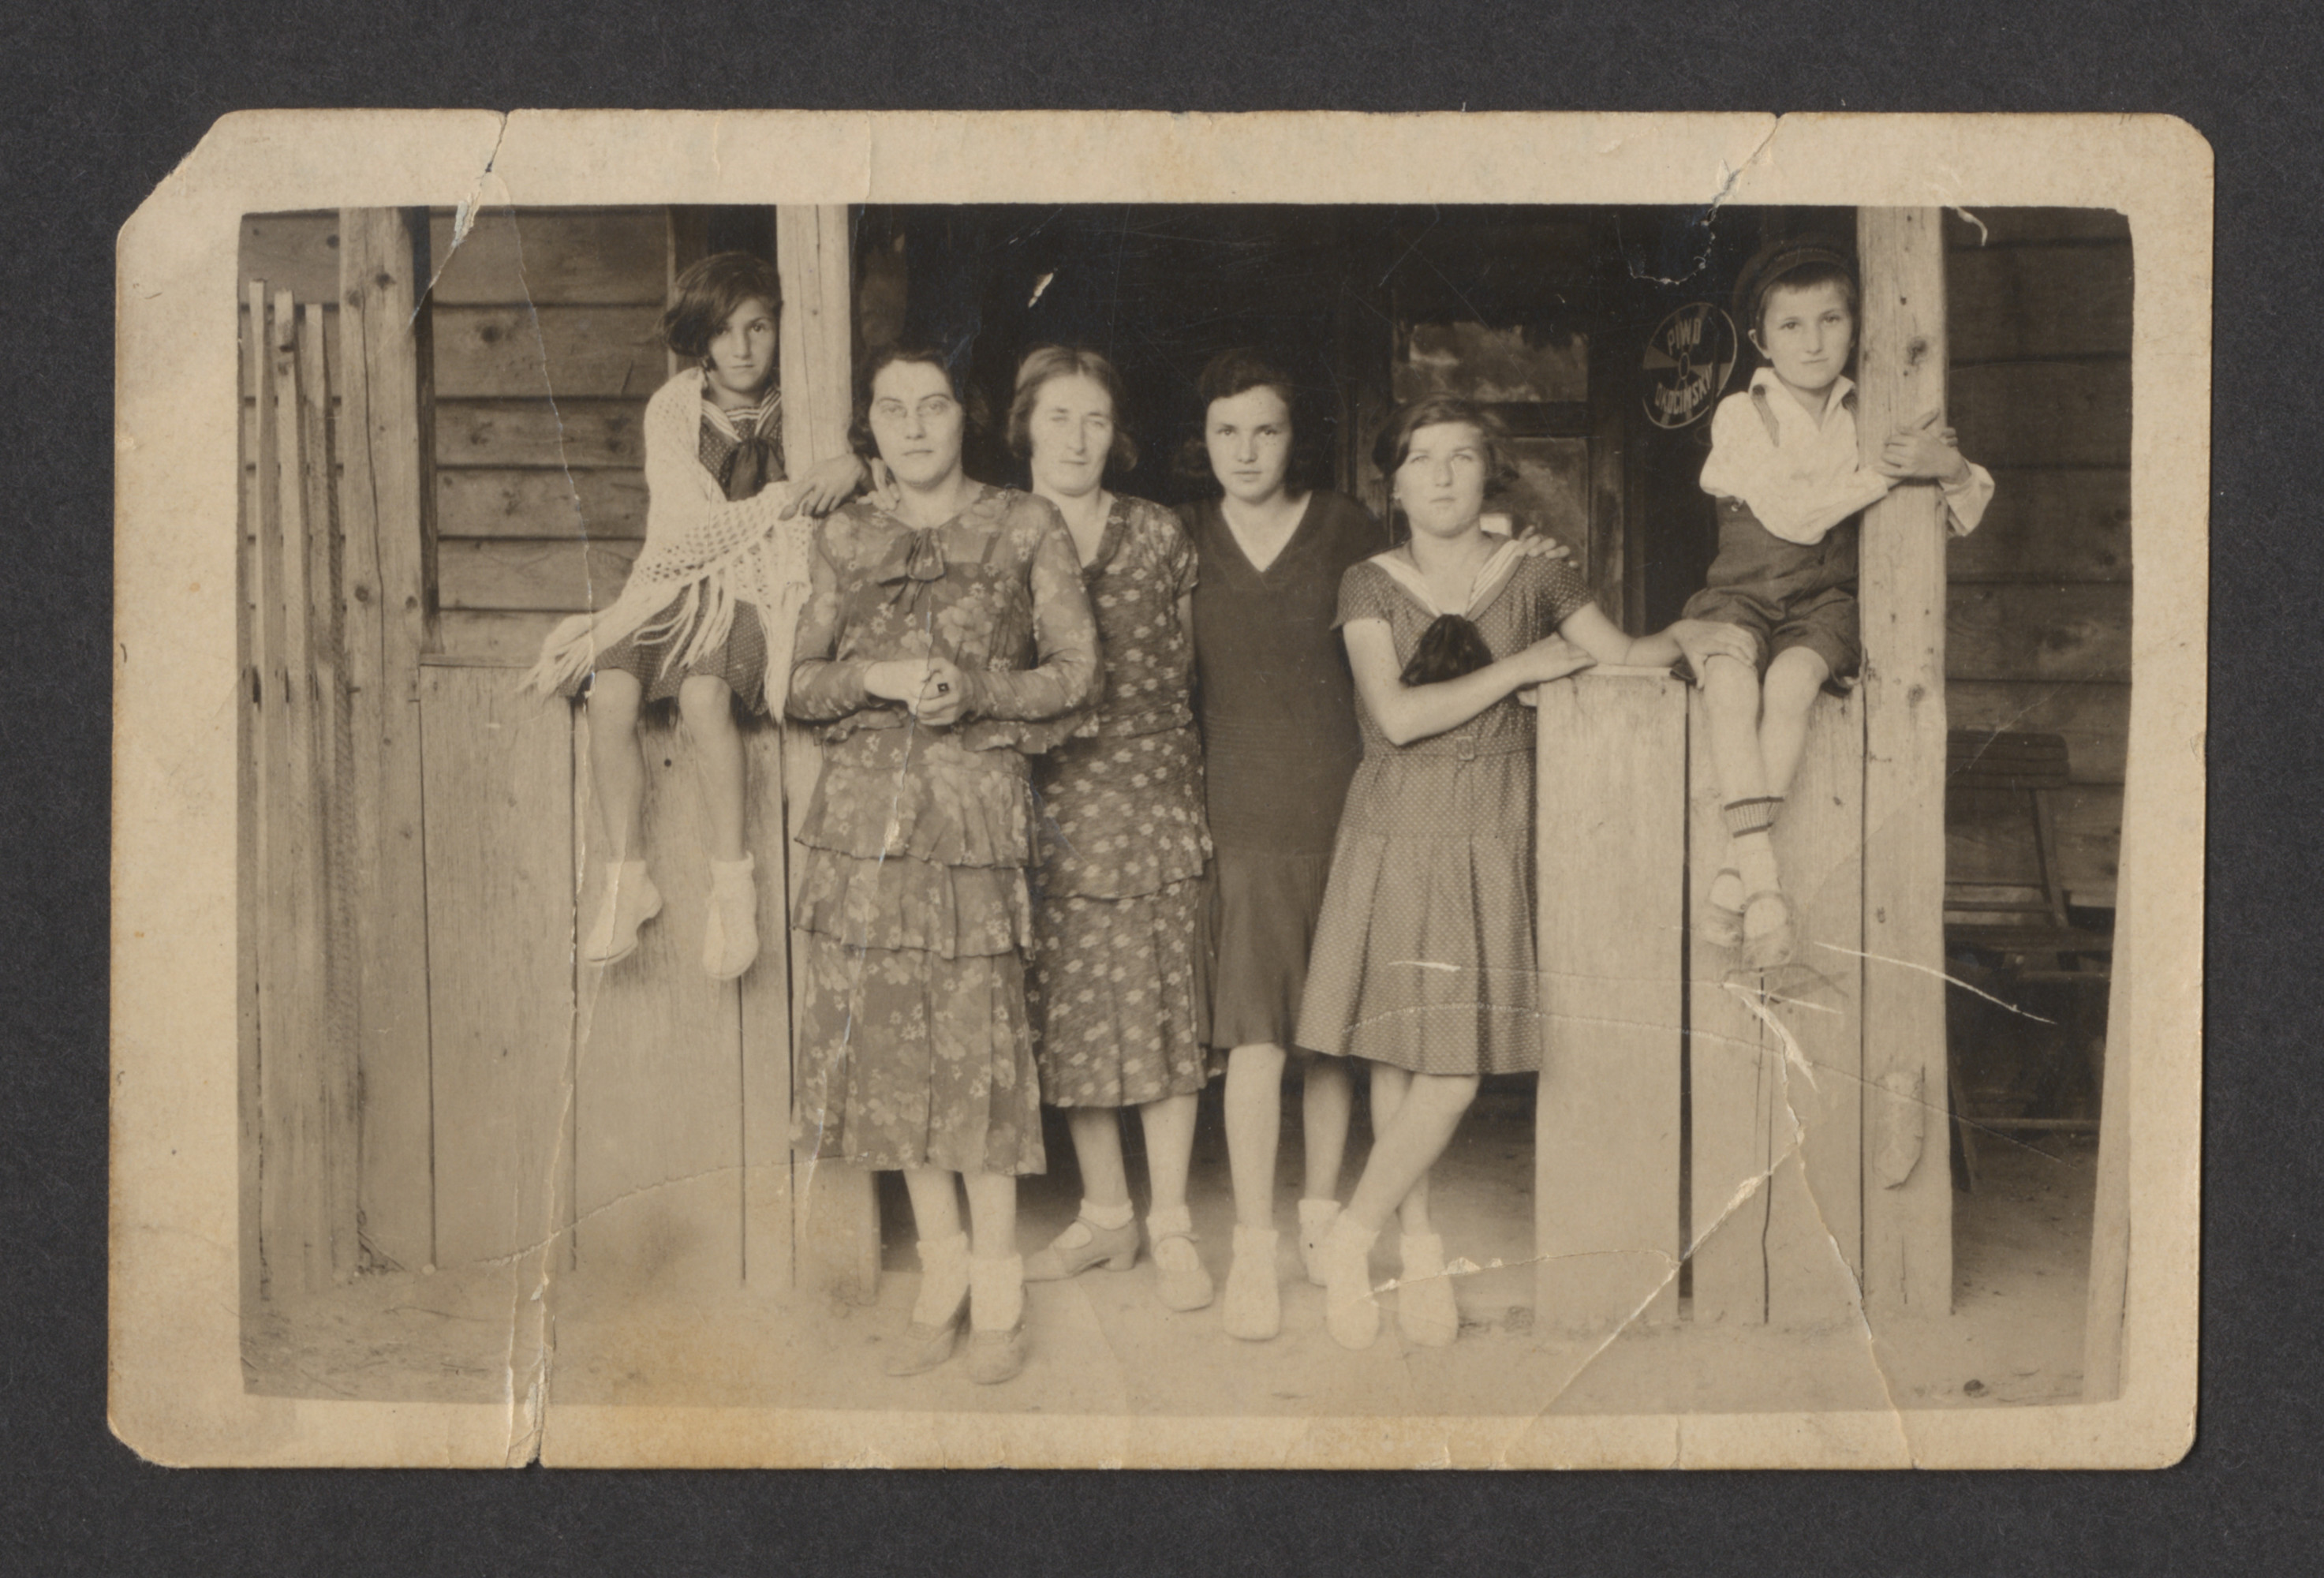 A Polish Jewish family gathers on a porch for a photograph.  Among those pictured are Blima Spiro (second from right) and her cousin Yoel Ullman (far right).